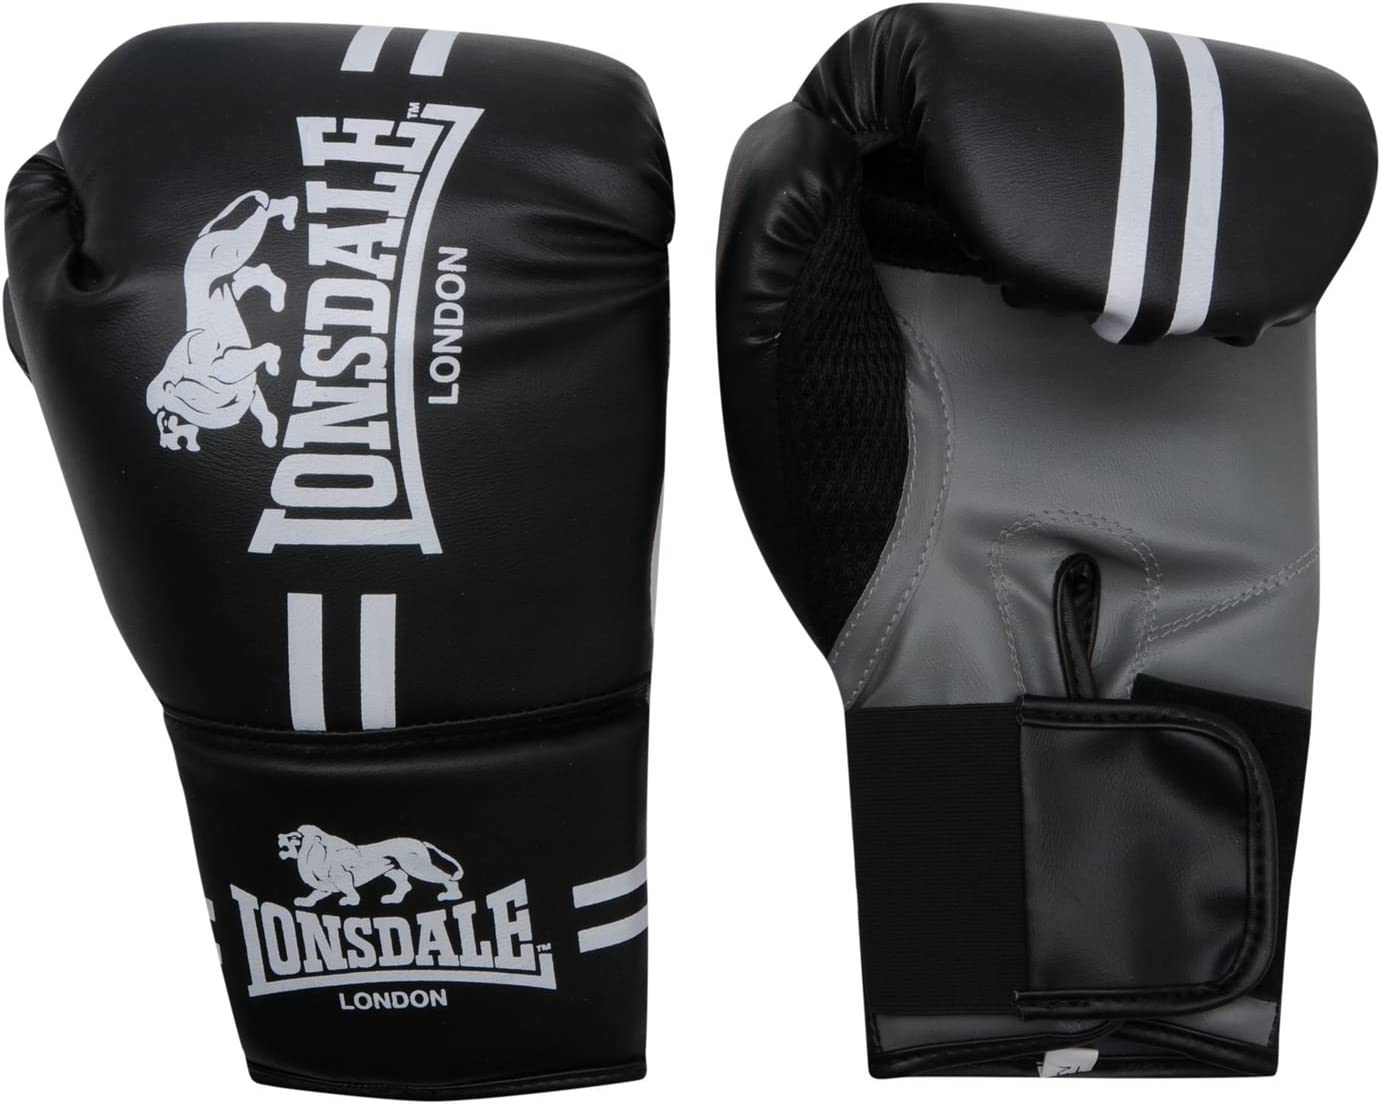 Lonsdale Contender Boxing Gloves.Bag Mitts.Brand New.Keeps you cool WAS £23.99